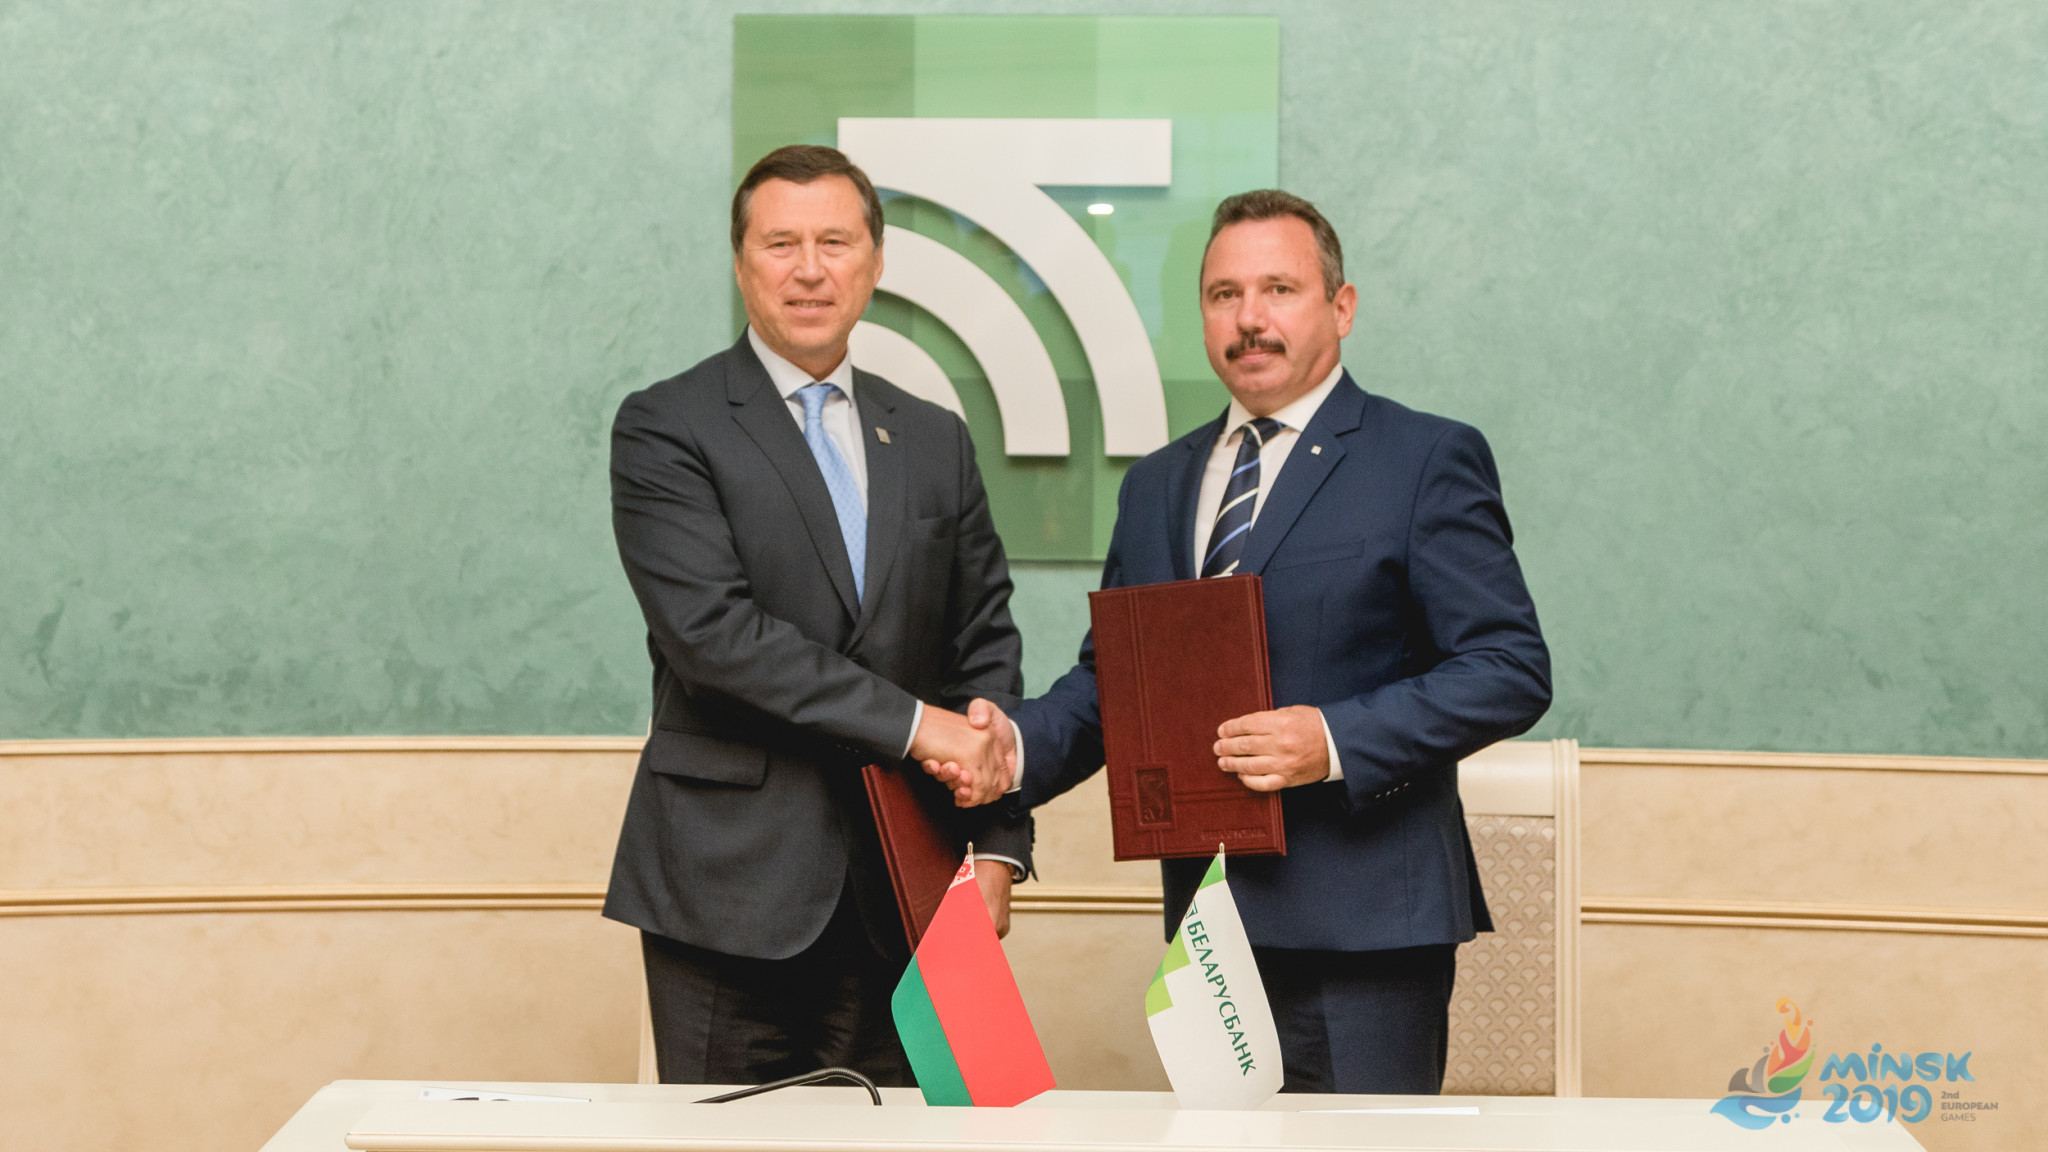 Minsk 2019 announce partnership with Belarusbank